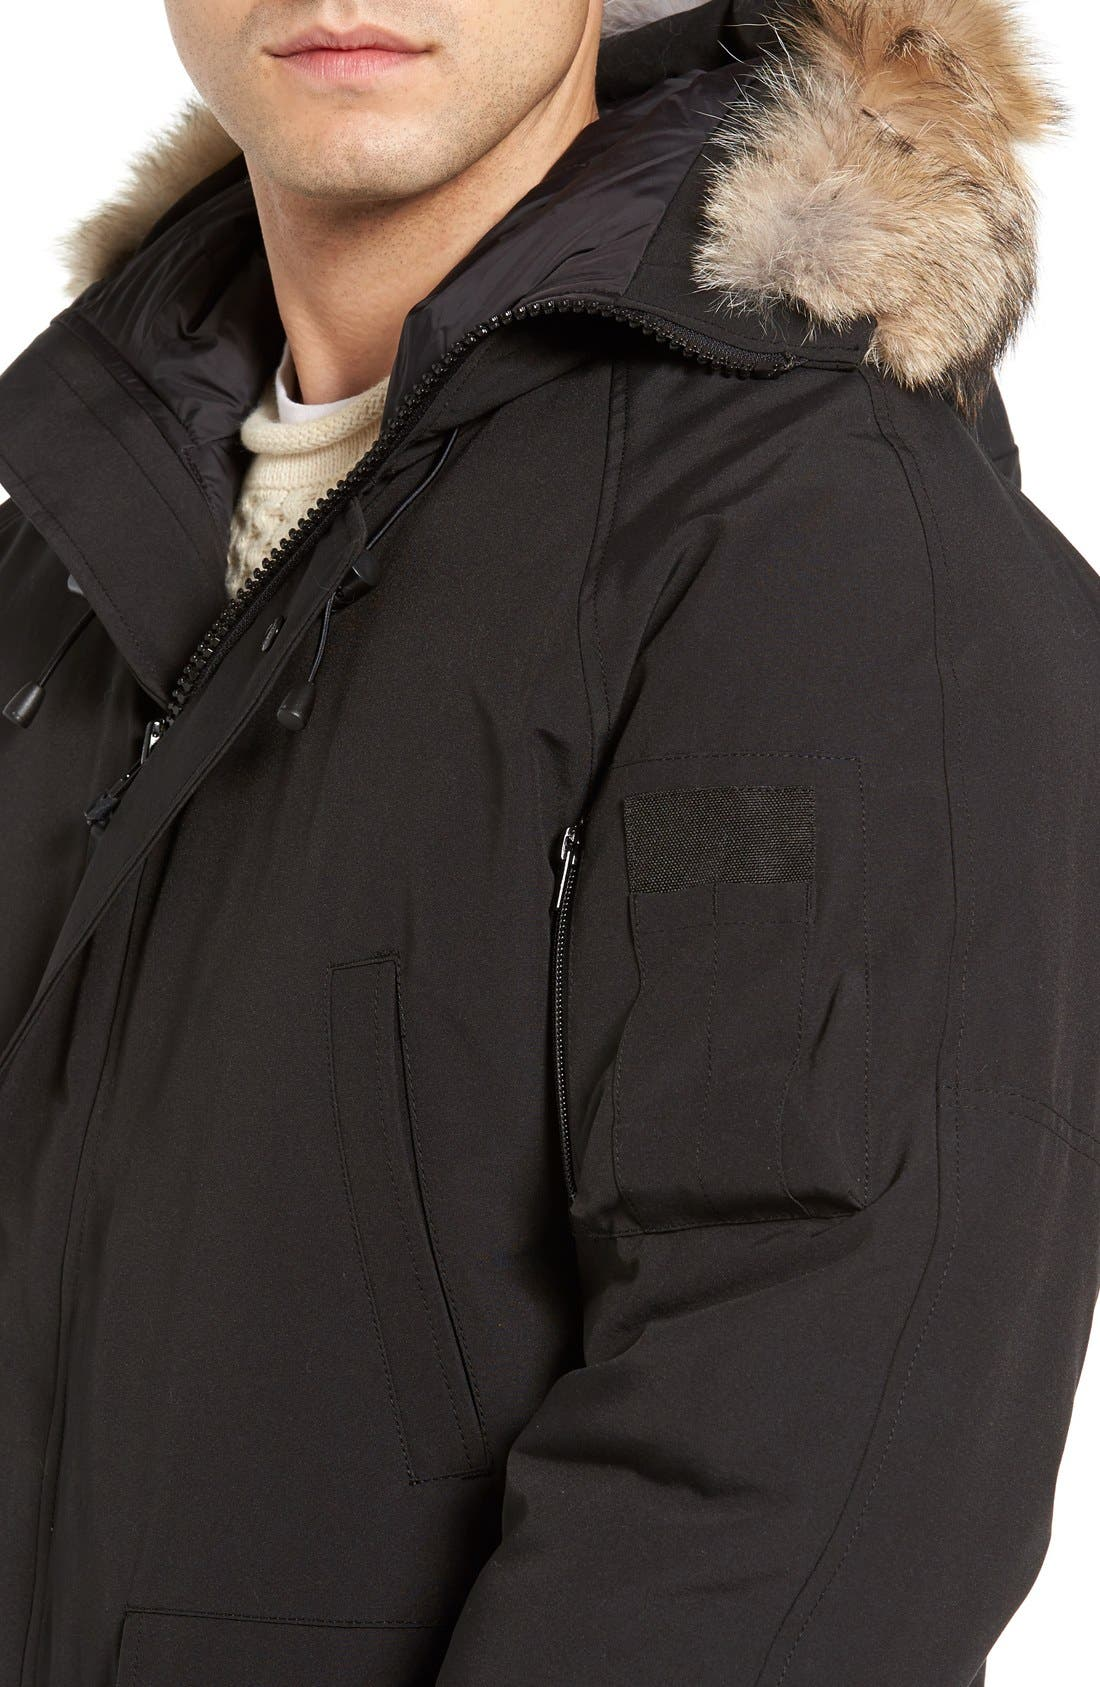 'Chilliwack' Down Bomber Jacket with Genuine Coyote Trim,                             Alternate thumbnail 4, color,                             001